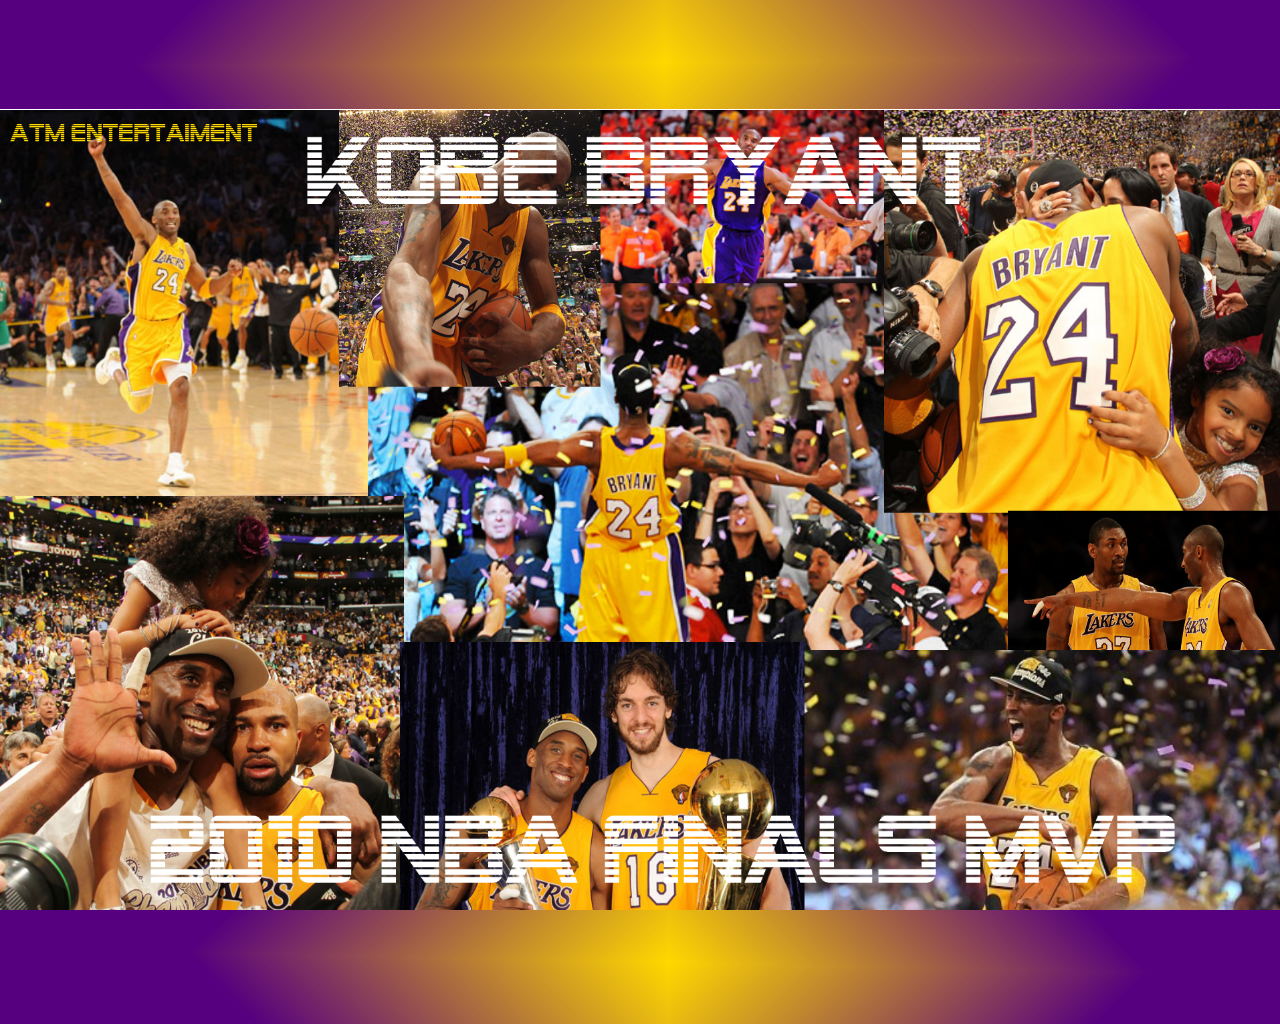 Kobe Bryant 2010 Finals MVP Downloads! | ATM Entertainment